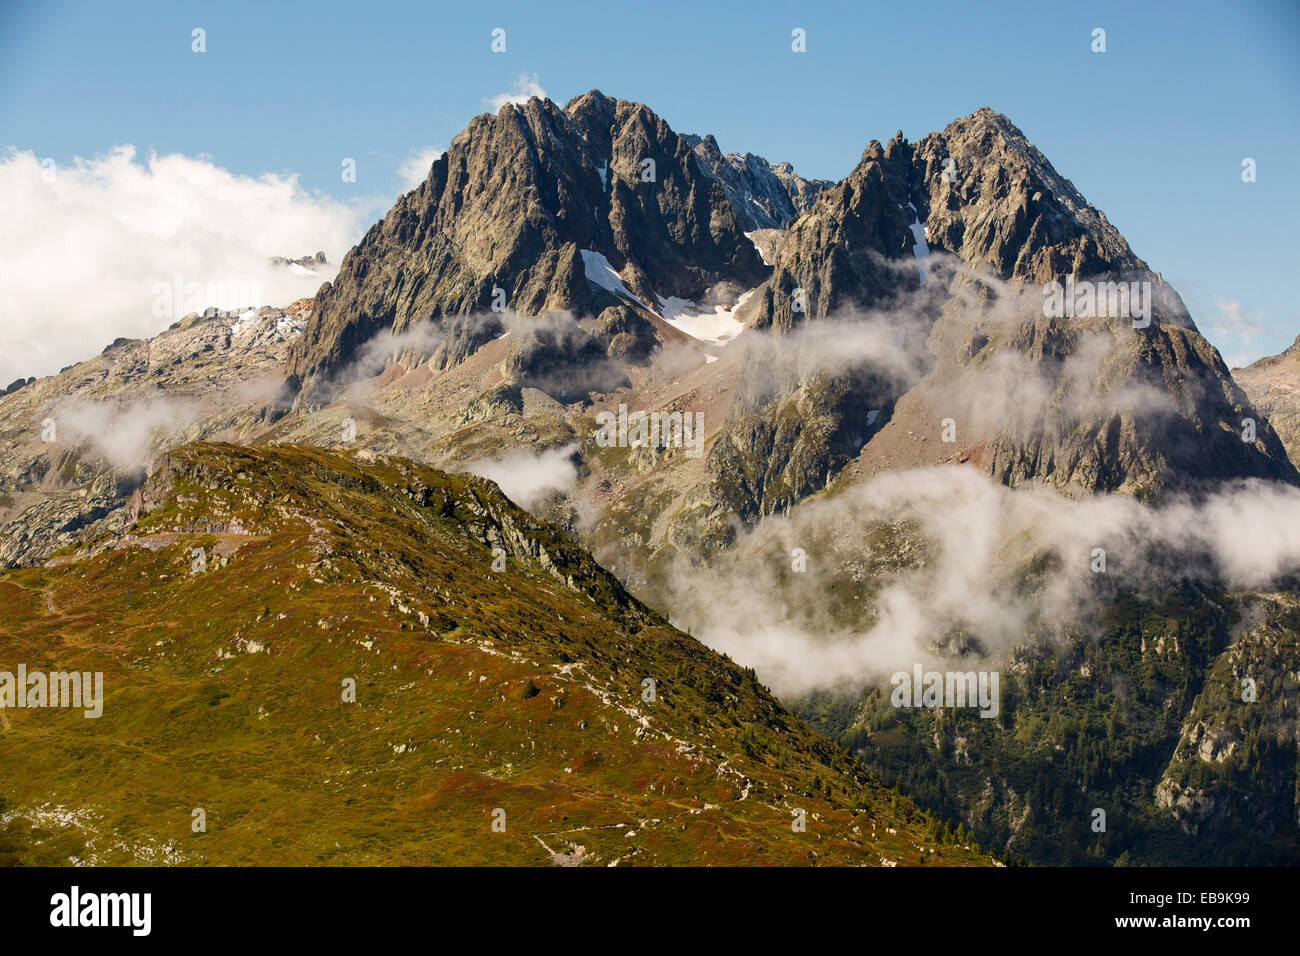 The Aiguille Rouge range from the Col du Balme, French Alps. - Stock Image